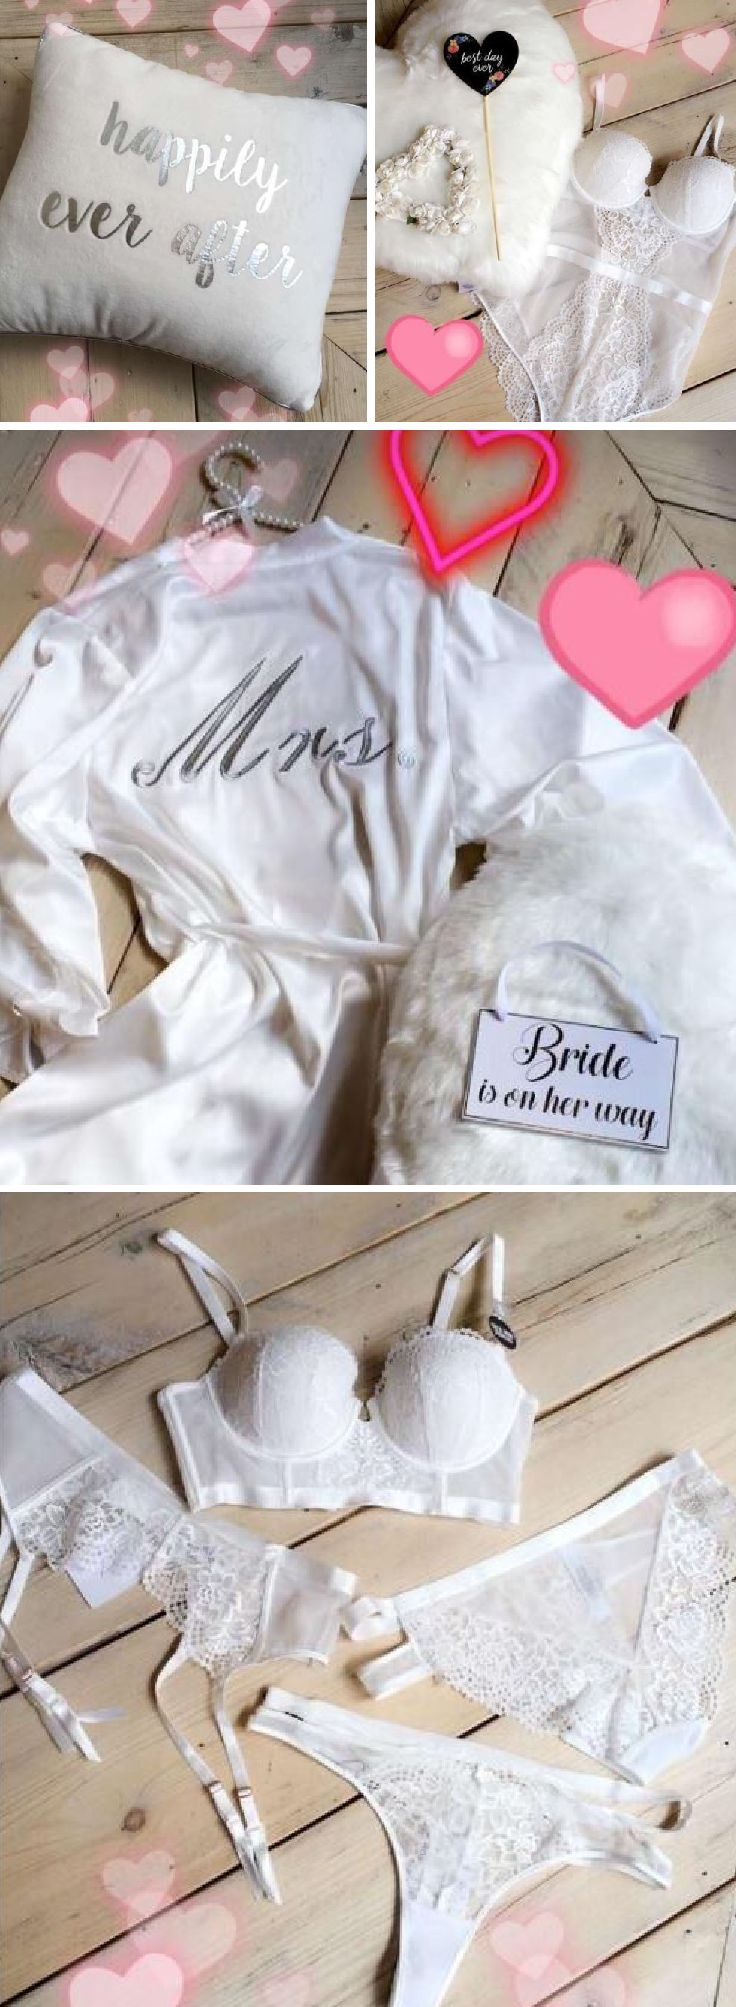 21 best Wedding Ideas images on Pinterest | Bridal, Bride and Bride ...